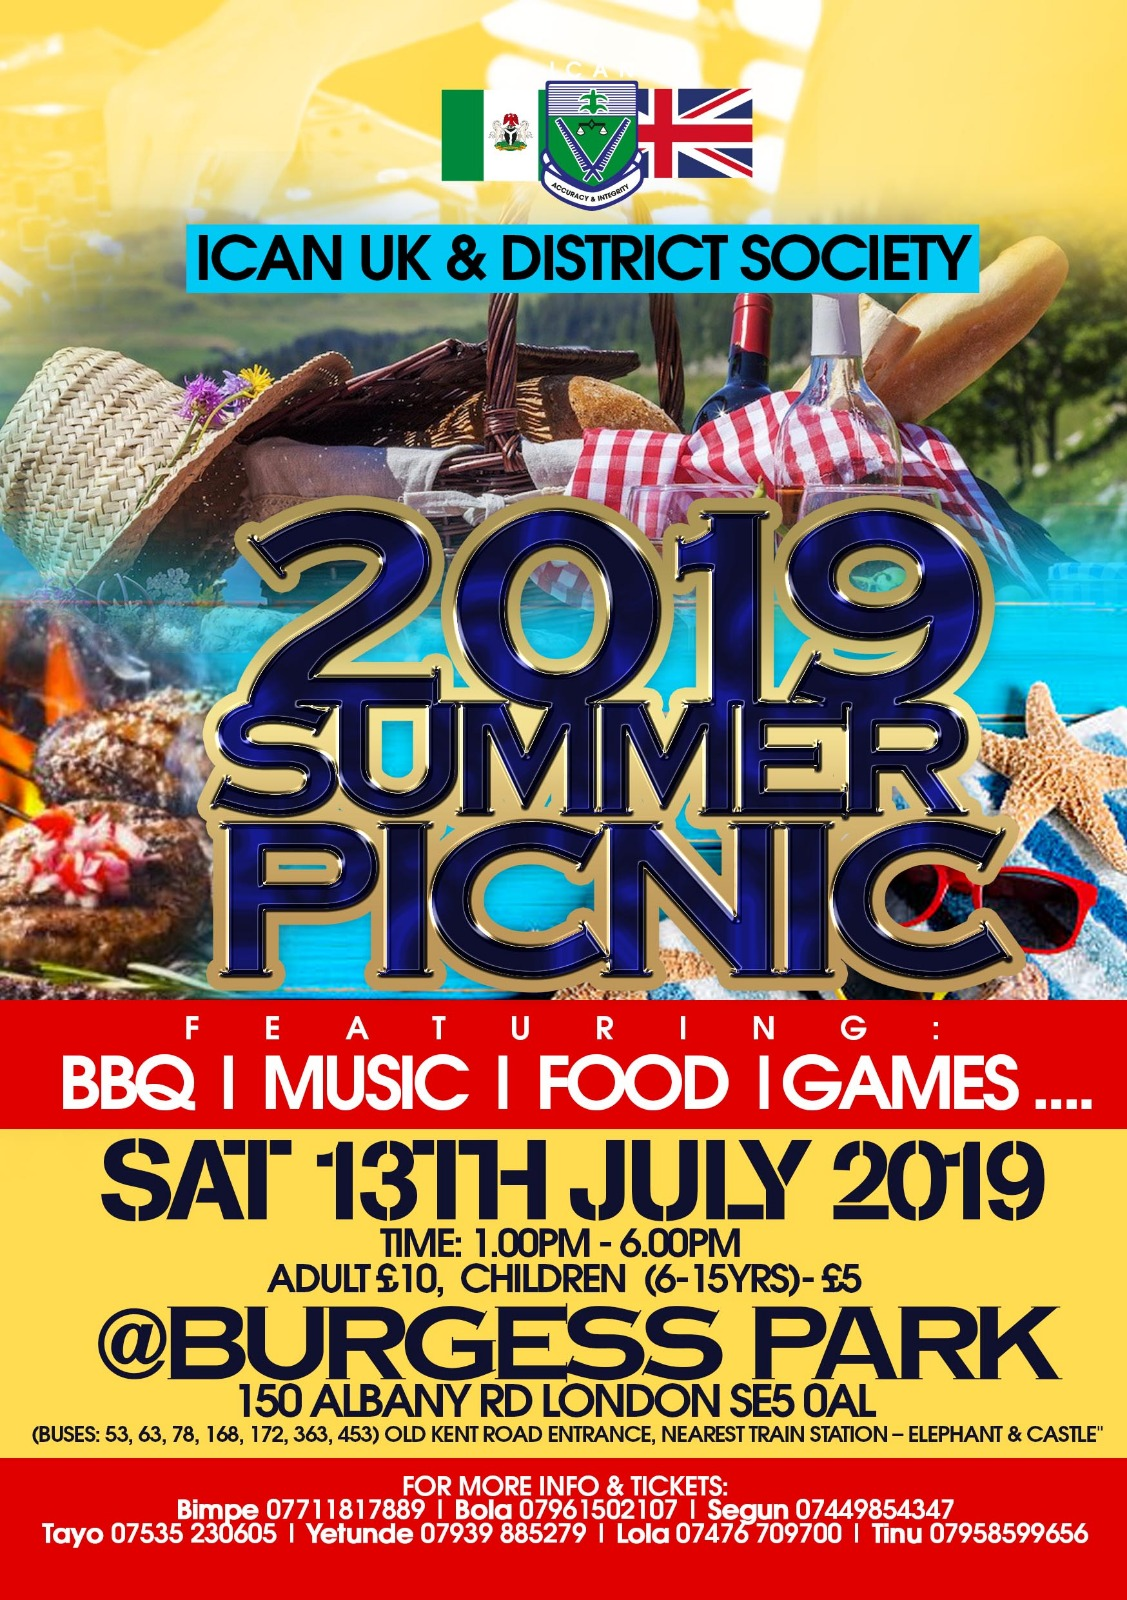 Summer Picnic | 13th July 2019 | 1.00 - 6.00 PM